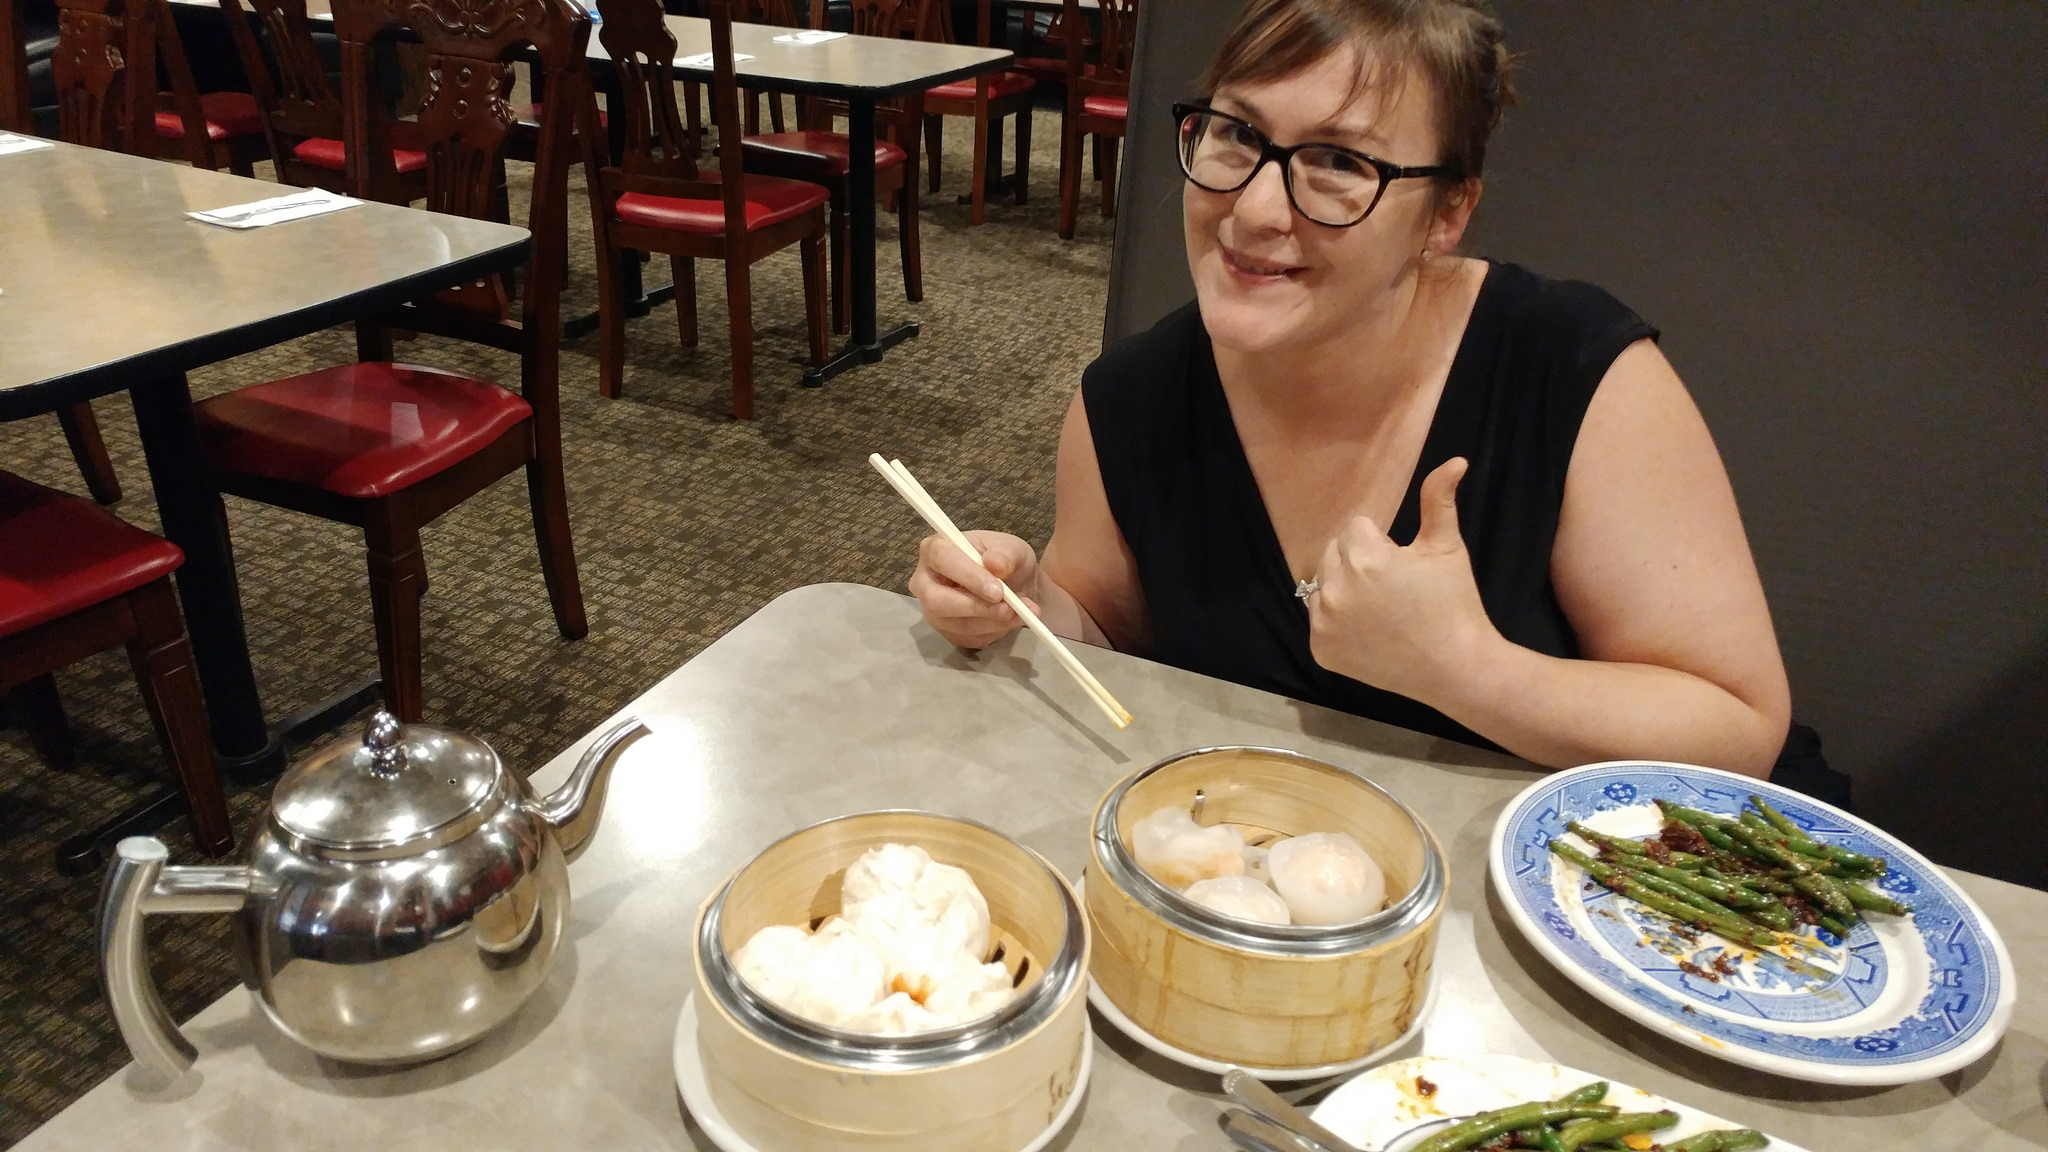 My lunch buddy and a few of our dim sum choices.